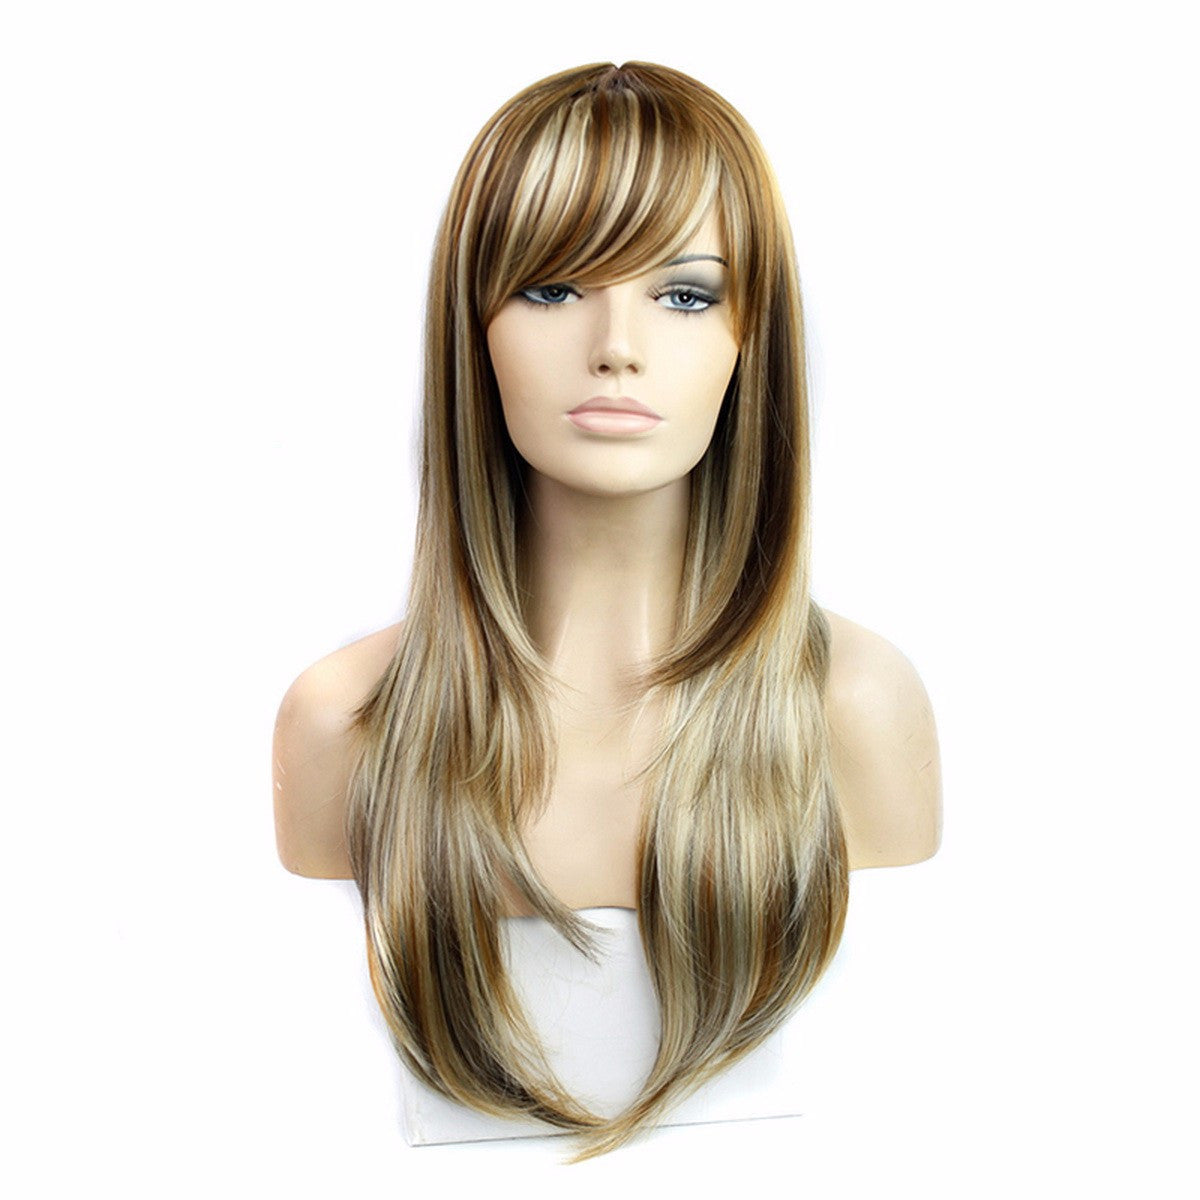 Blonde Ombre Natural Long Straight Synthetic Wig With Bangs,26inches - Jeybeauty